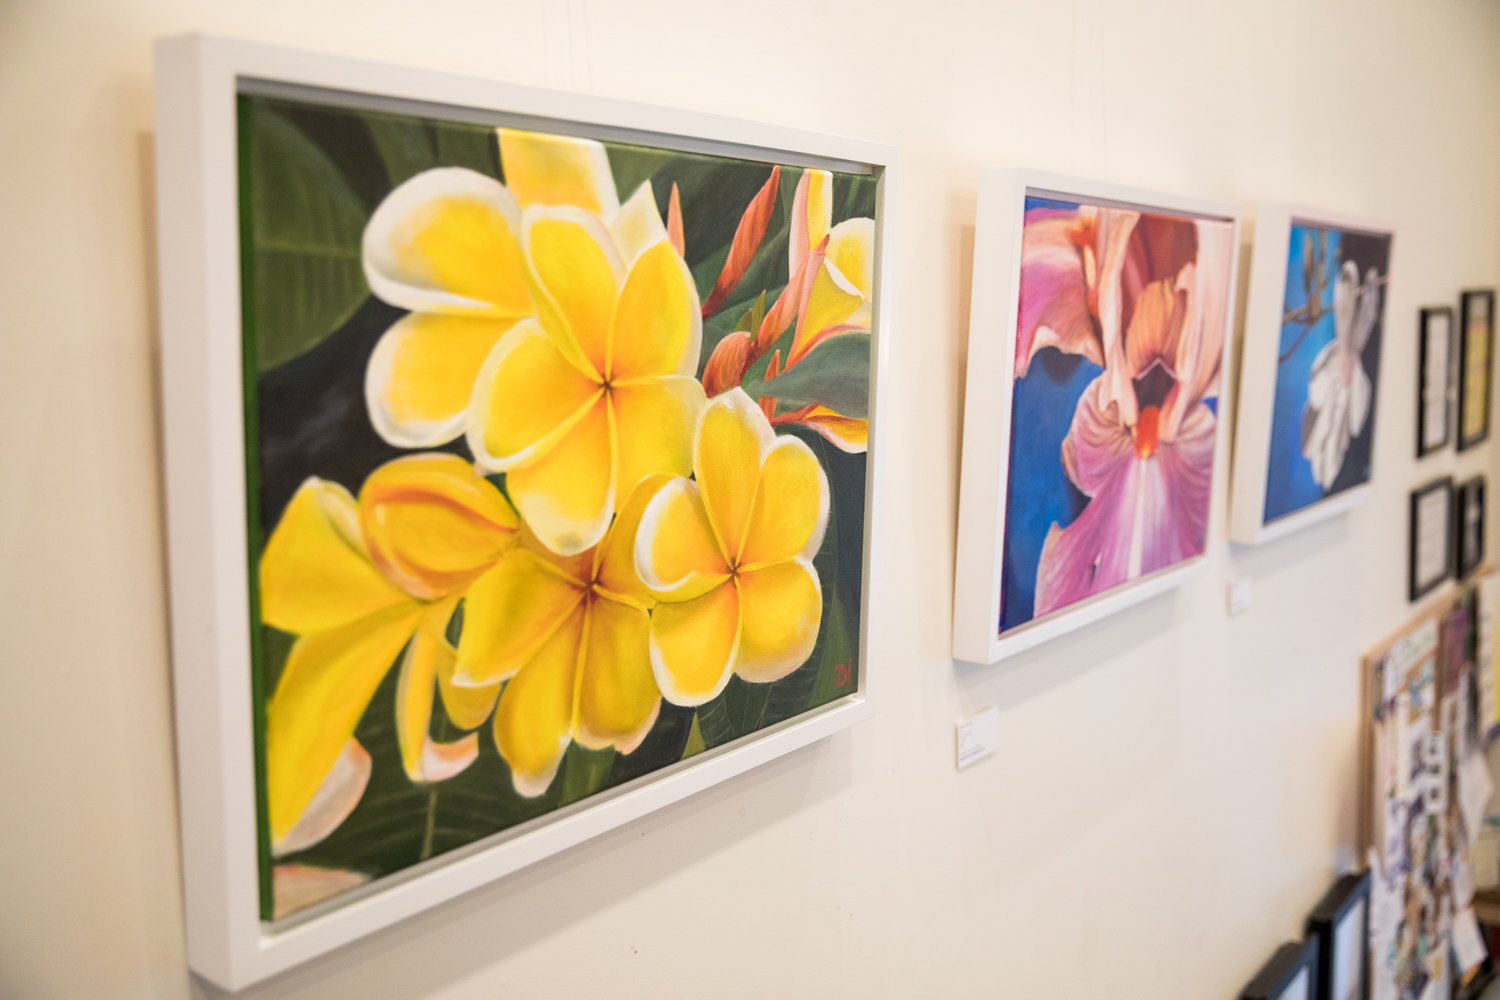 Daria Nawrocki's exhibition 'Flourish' brings a dose of floral vibrancy to the walls of Buunni Coffee, where it is on display through March 31.